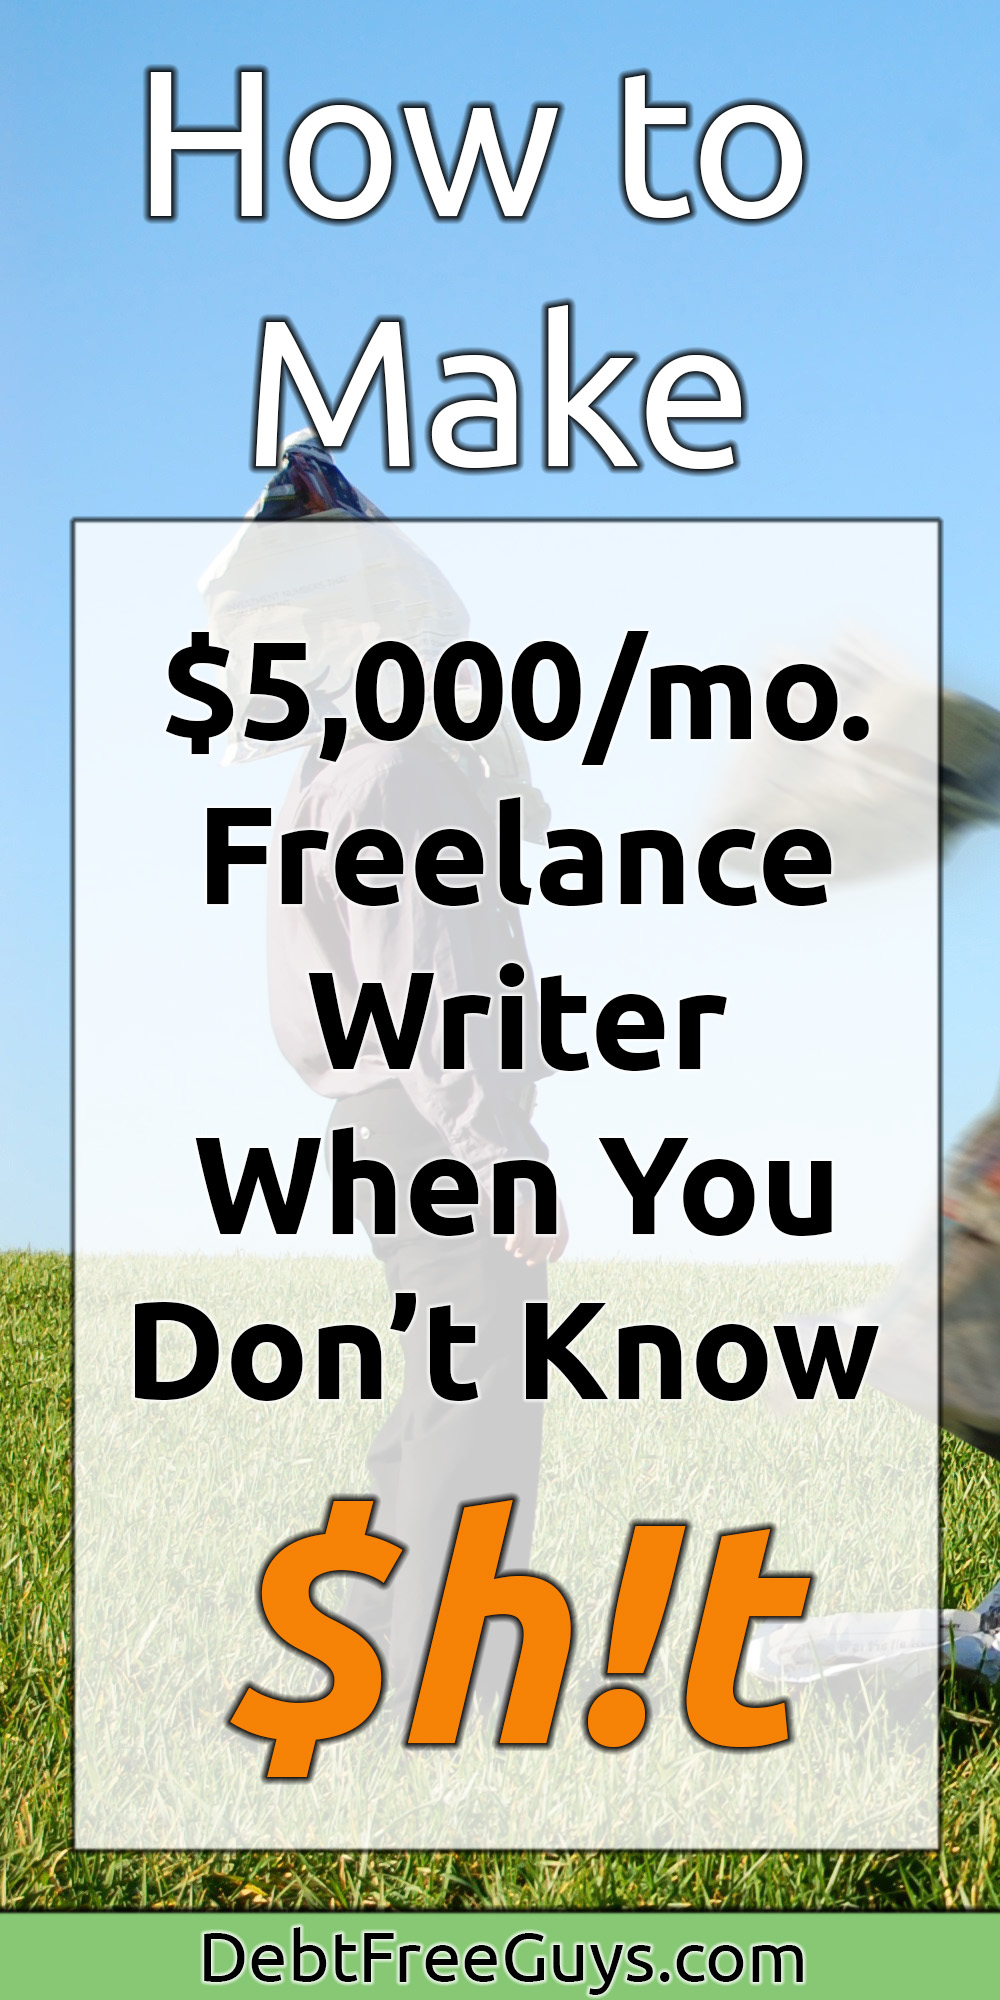 Tired of being broke or working for someone else? This 'how to' guide is all you need to know start earning yourself thousands in freelance writing income to increase your income streams or go solo.